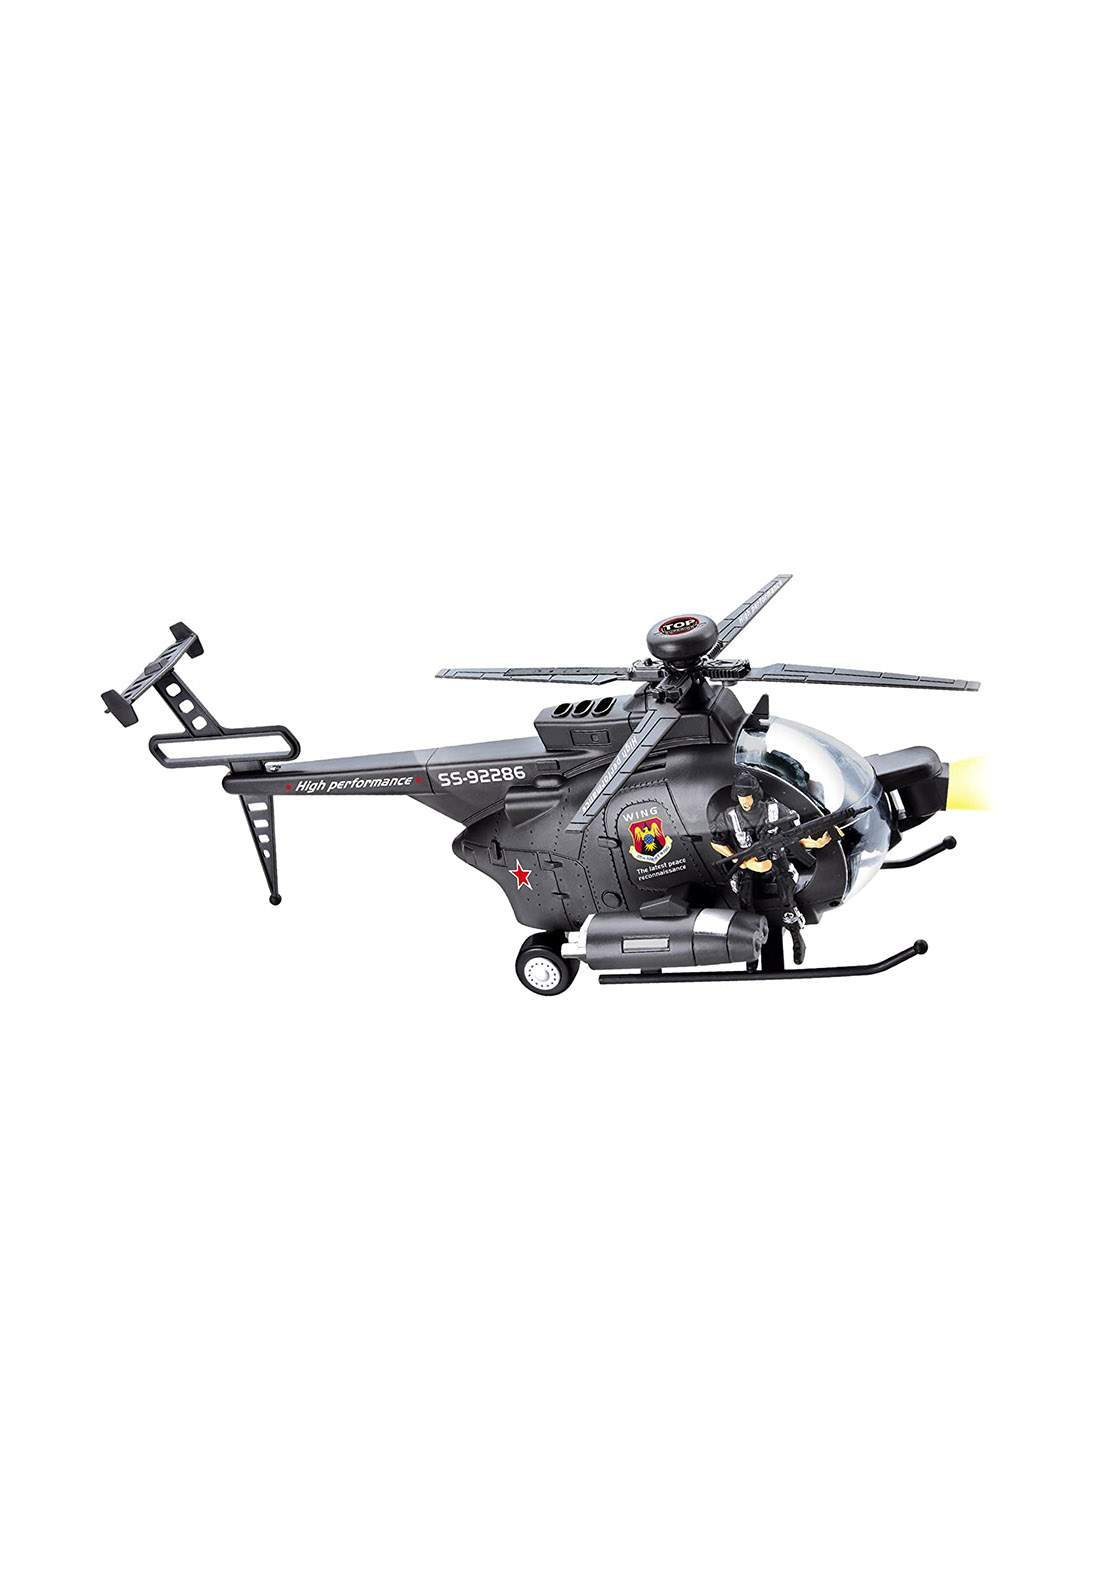 Helicopter 92286 Bump and Go Action Helicopter Toy لعبة الطائرة للأطفال